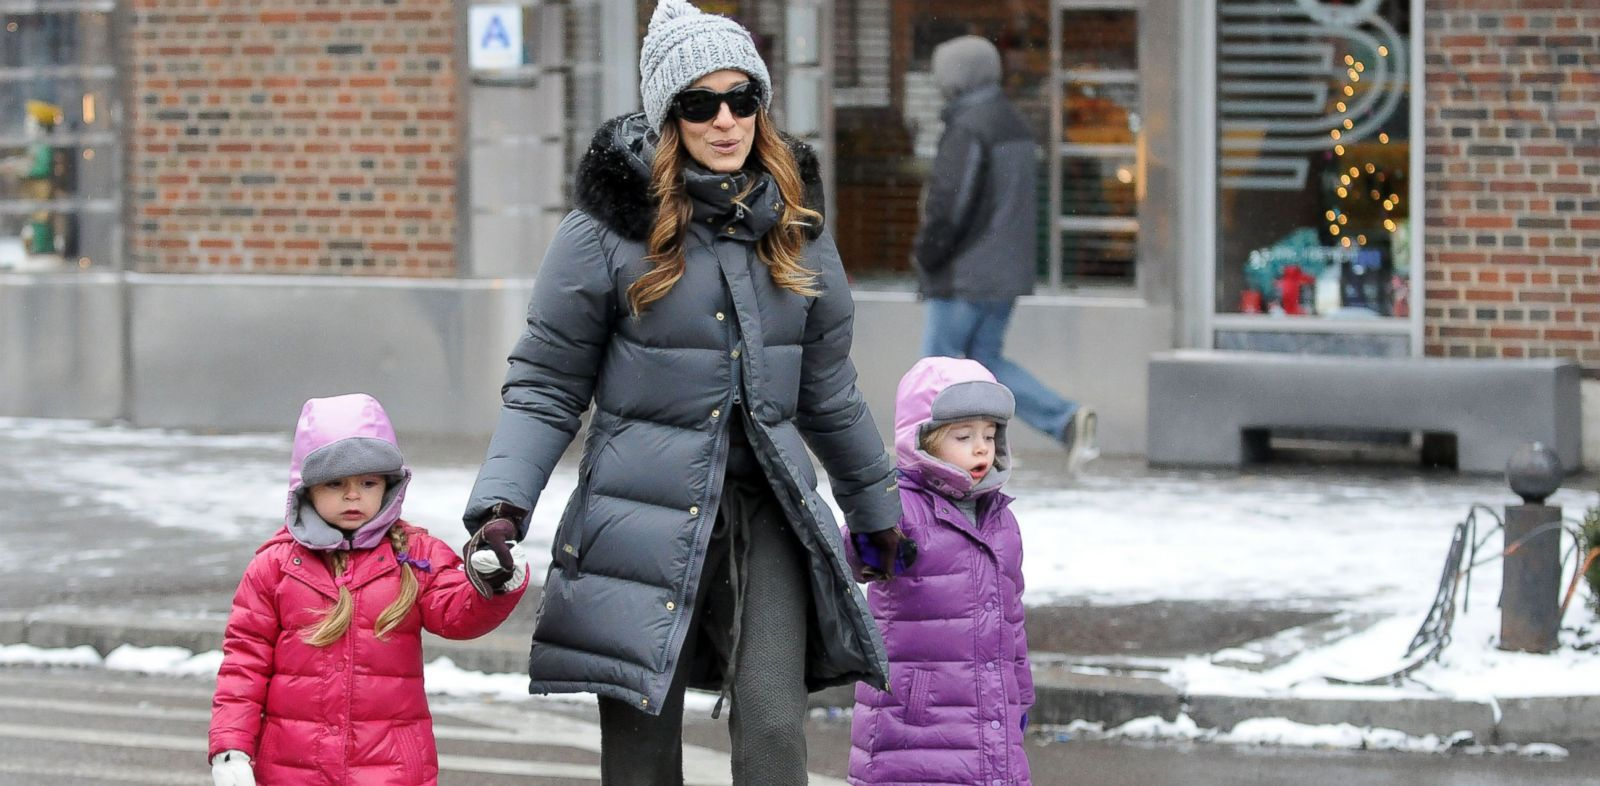 Sarah Jessica Parker is often seen walking through the streets of New York City.